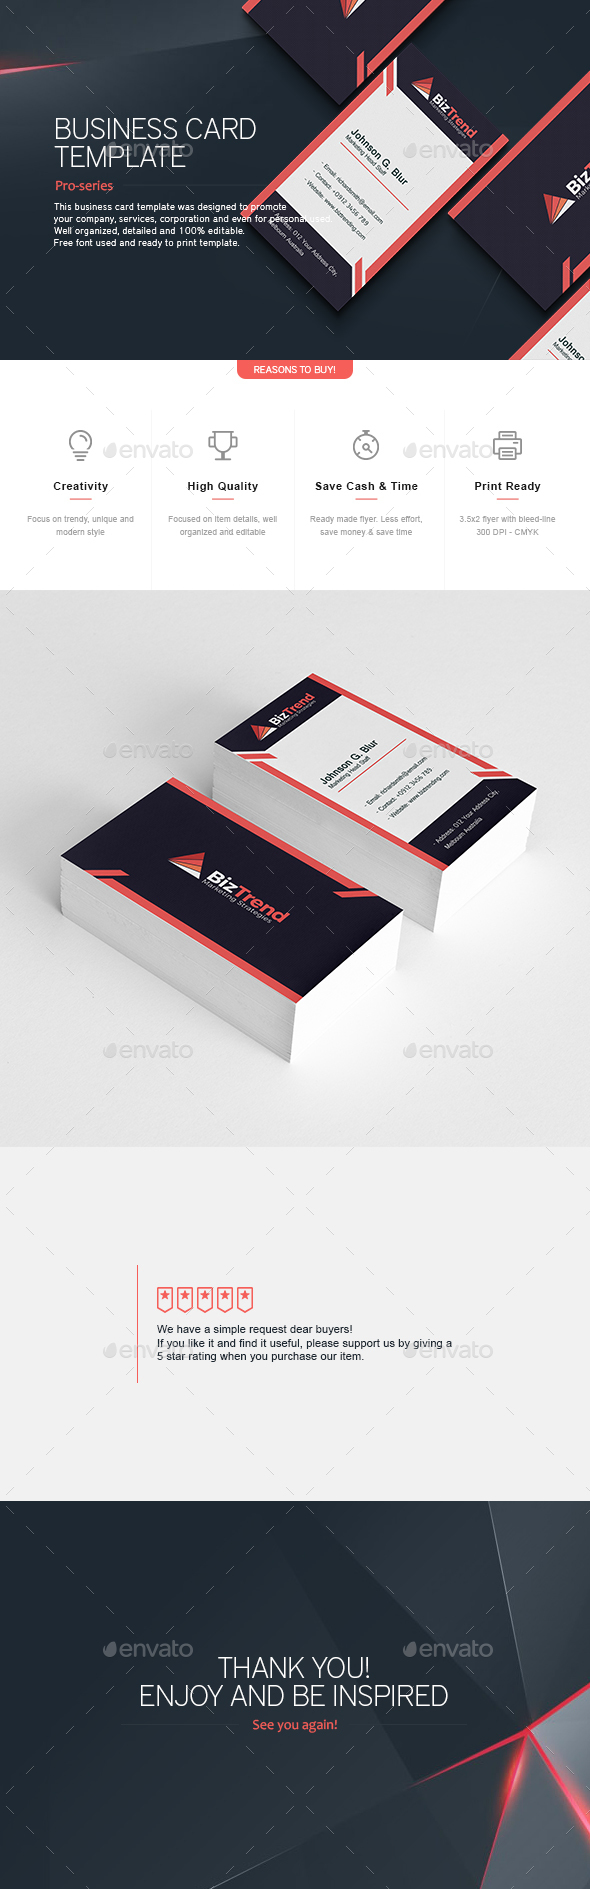 Business Card 4 - Corporate Business Cards